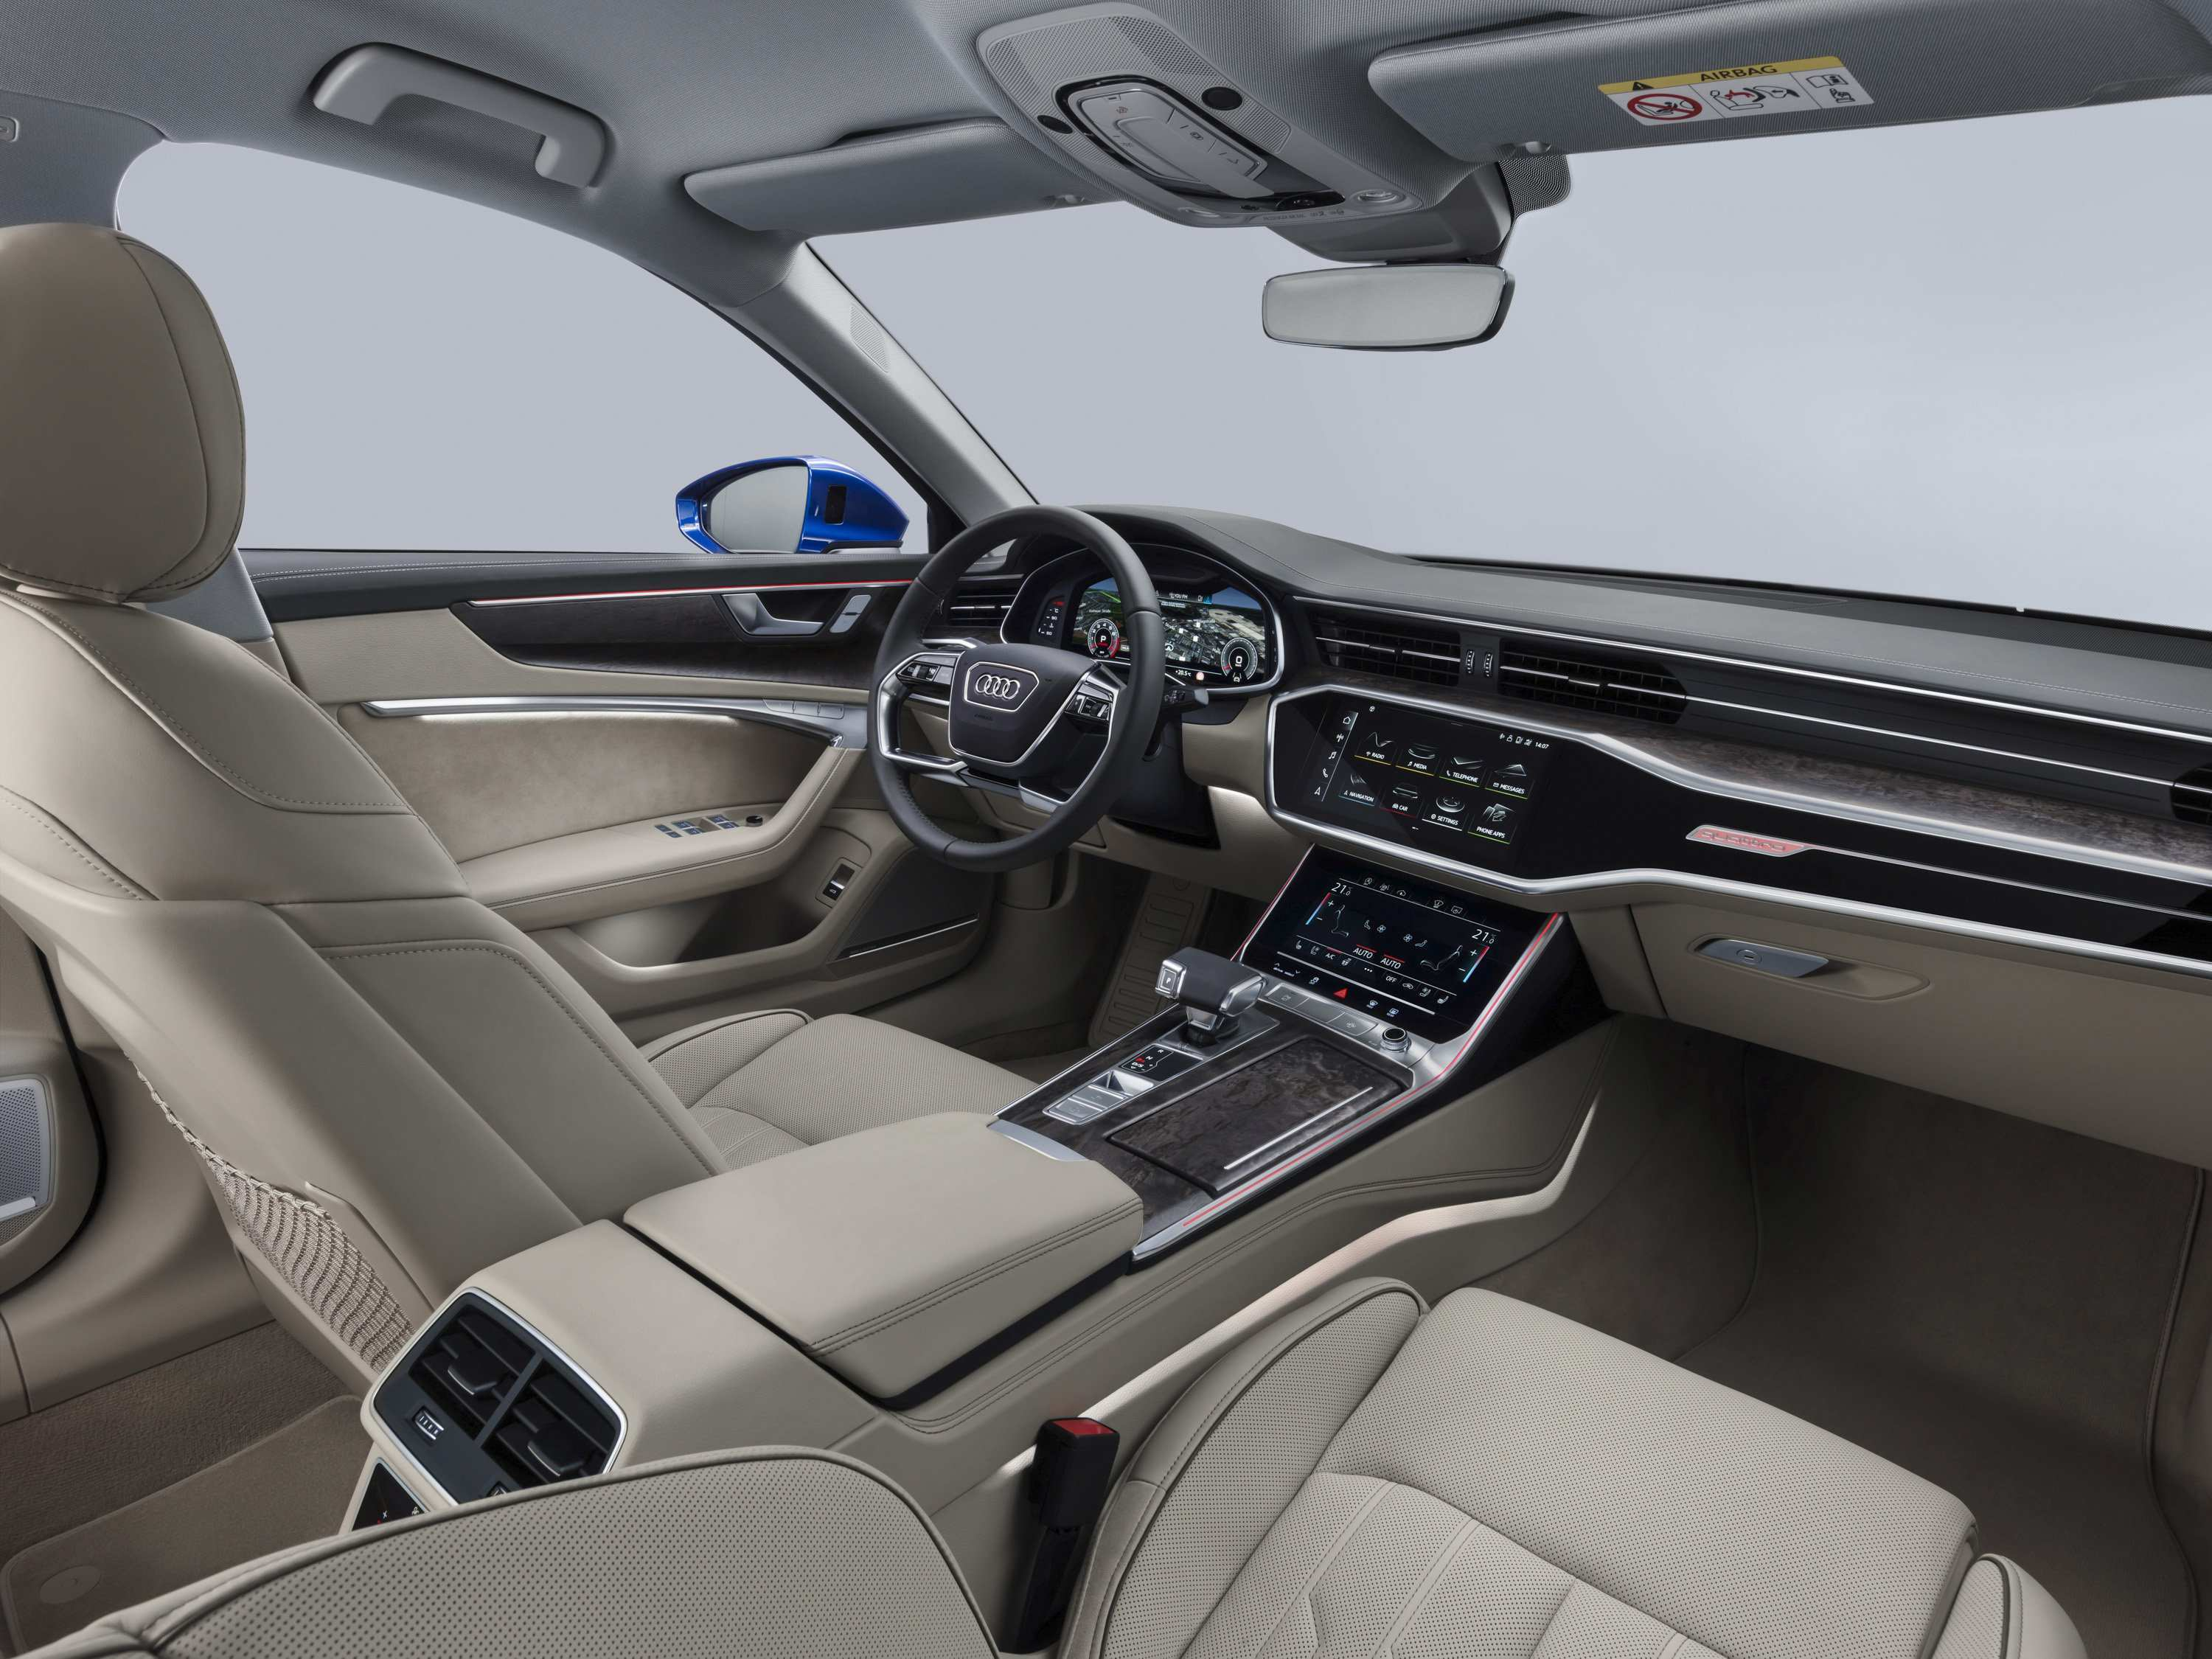 28 Concept of Review Audi 2019 A6 New Interior Specs by Review Audi 2019 A6 New Interior